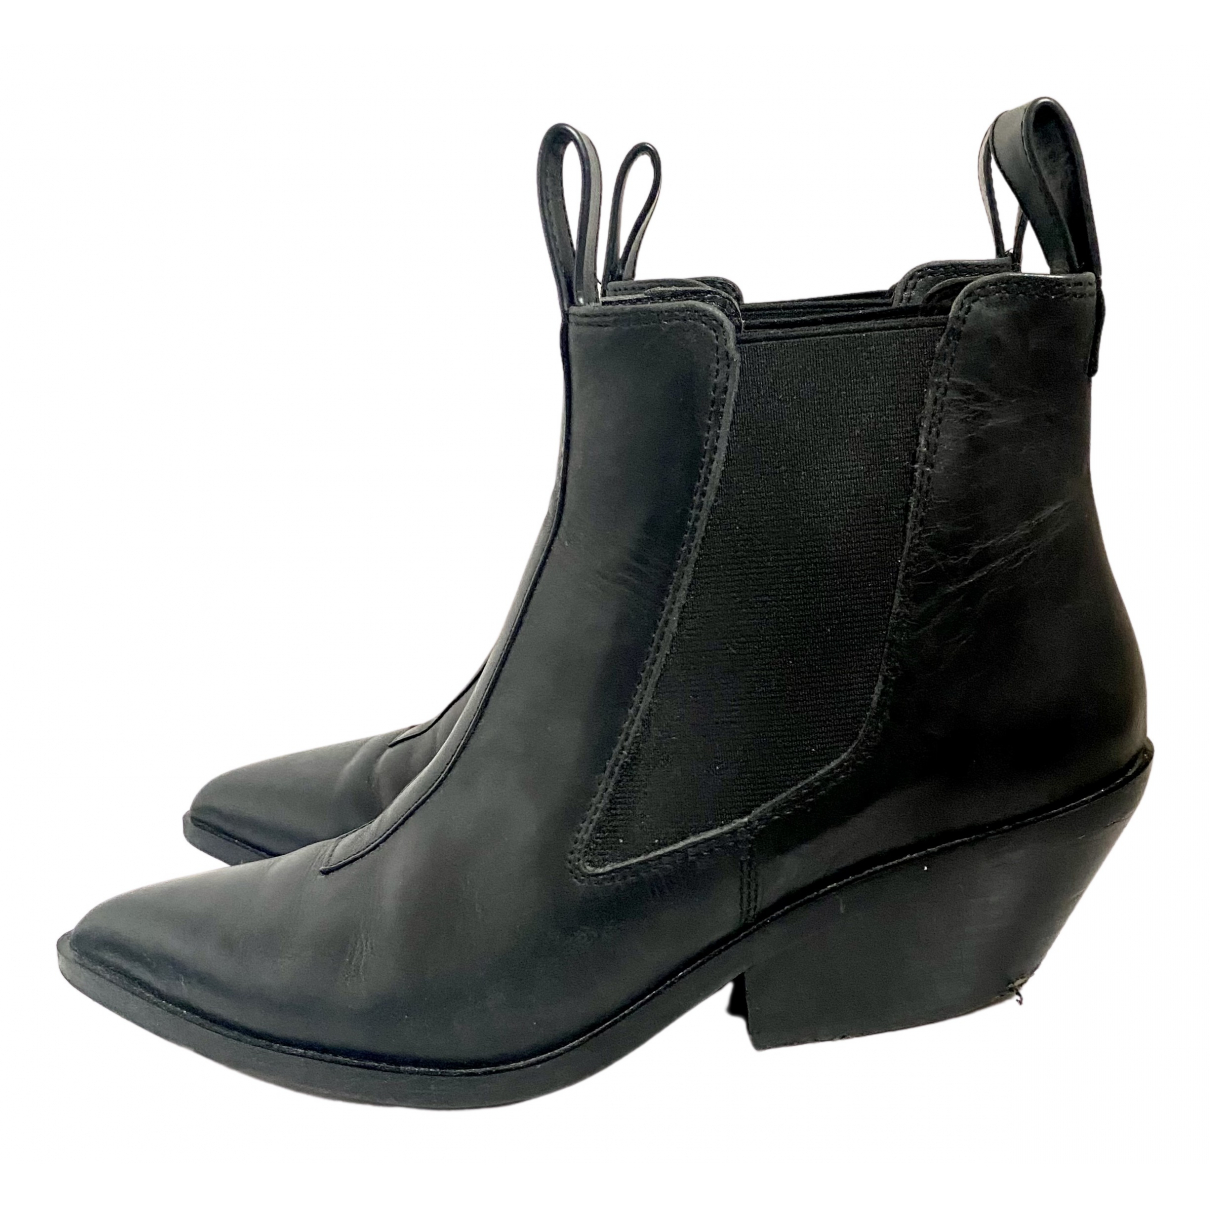 & Stories N Black Leather Ankle boots for Women 40 EU